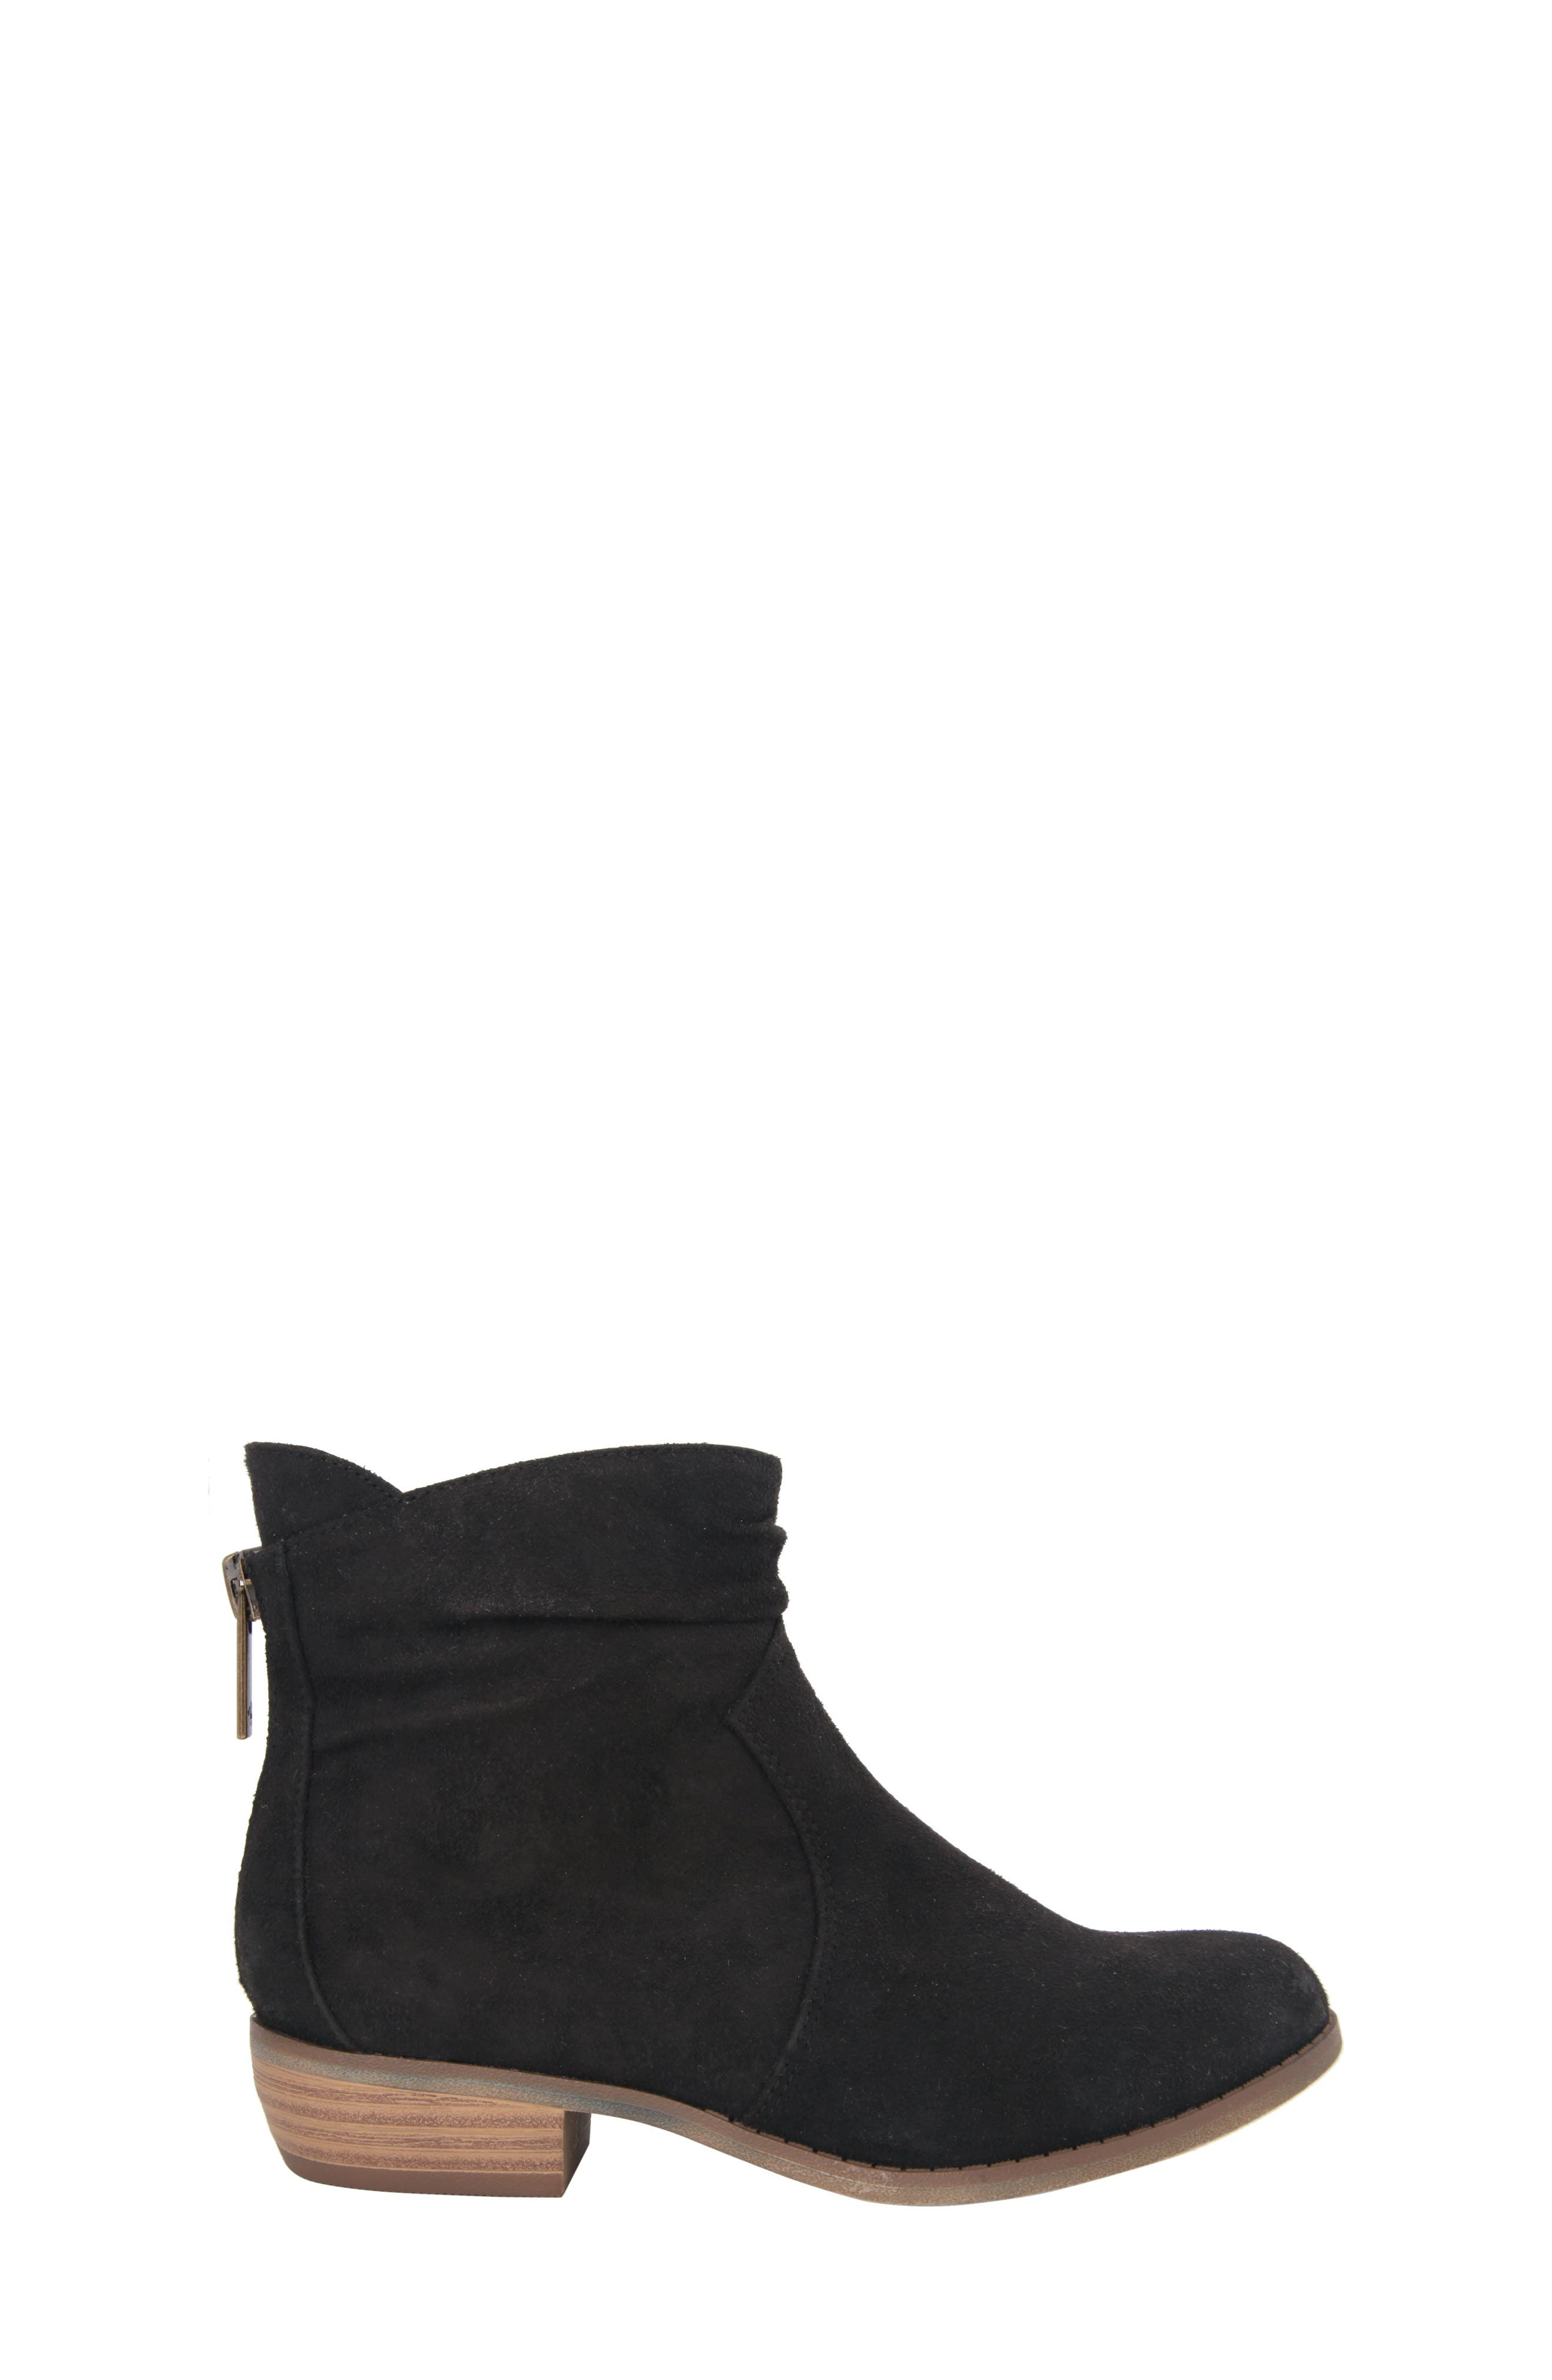 Delia Slightly Slouchy Bootie,                             Alternate thumbnail 3, color,                             003